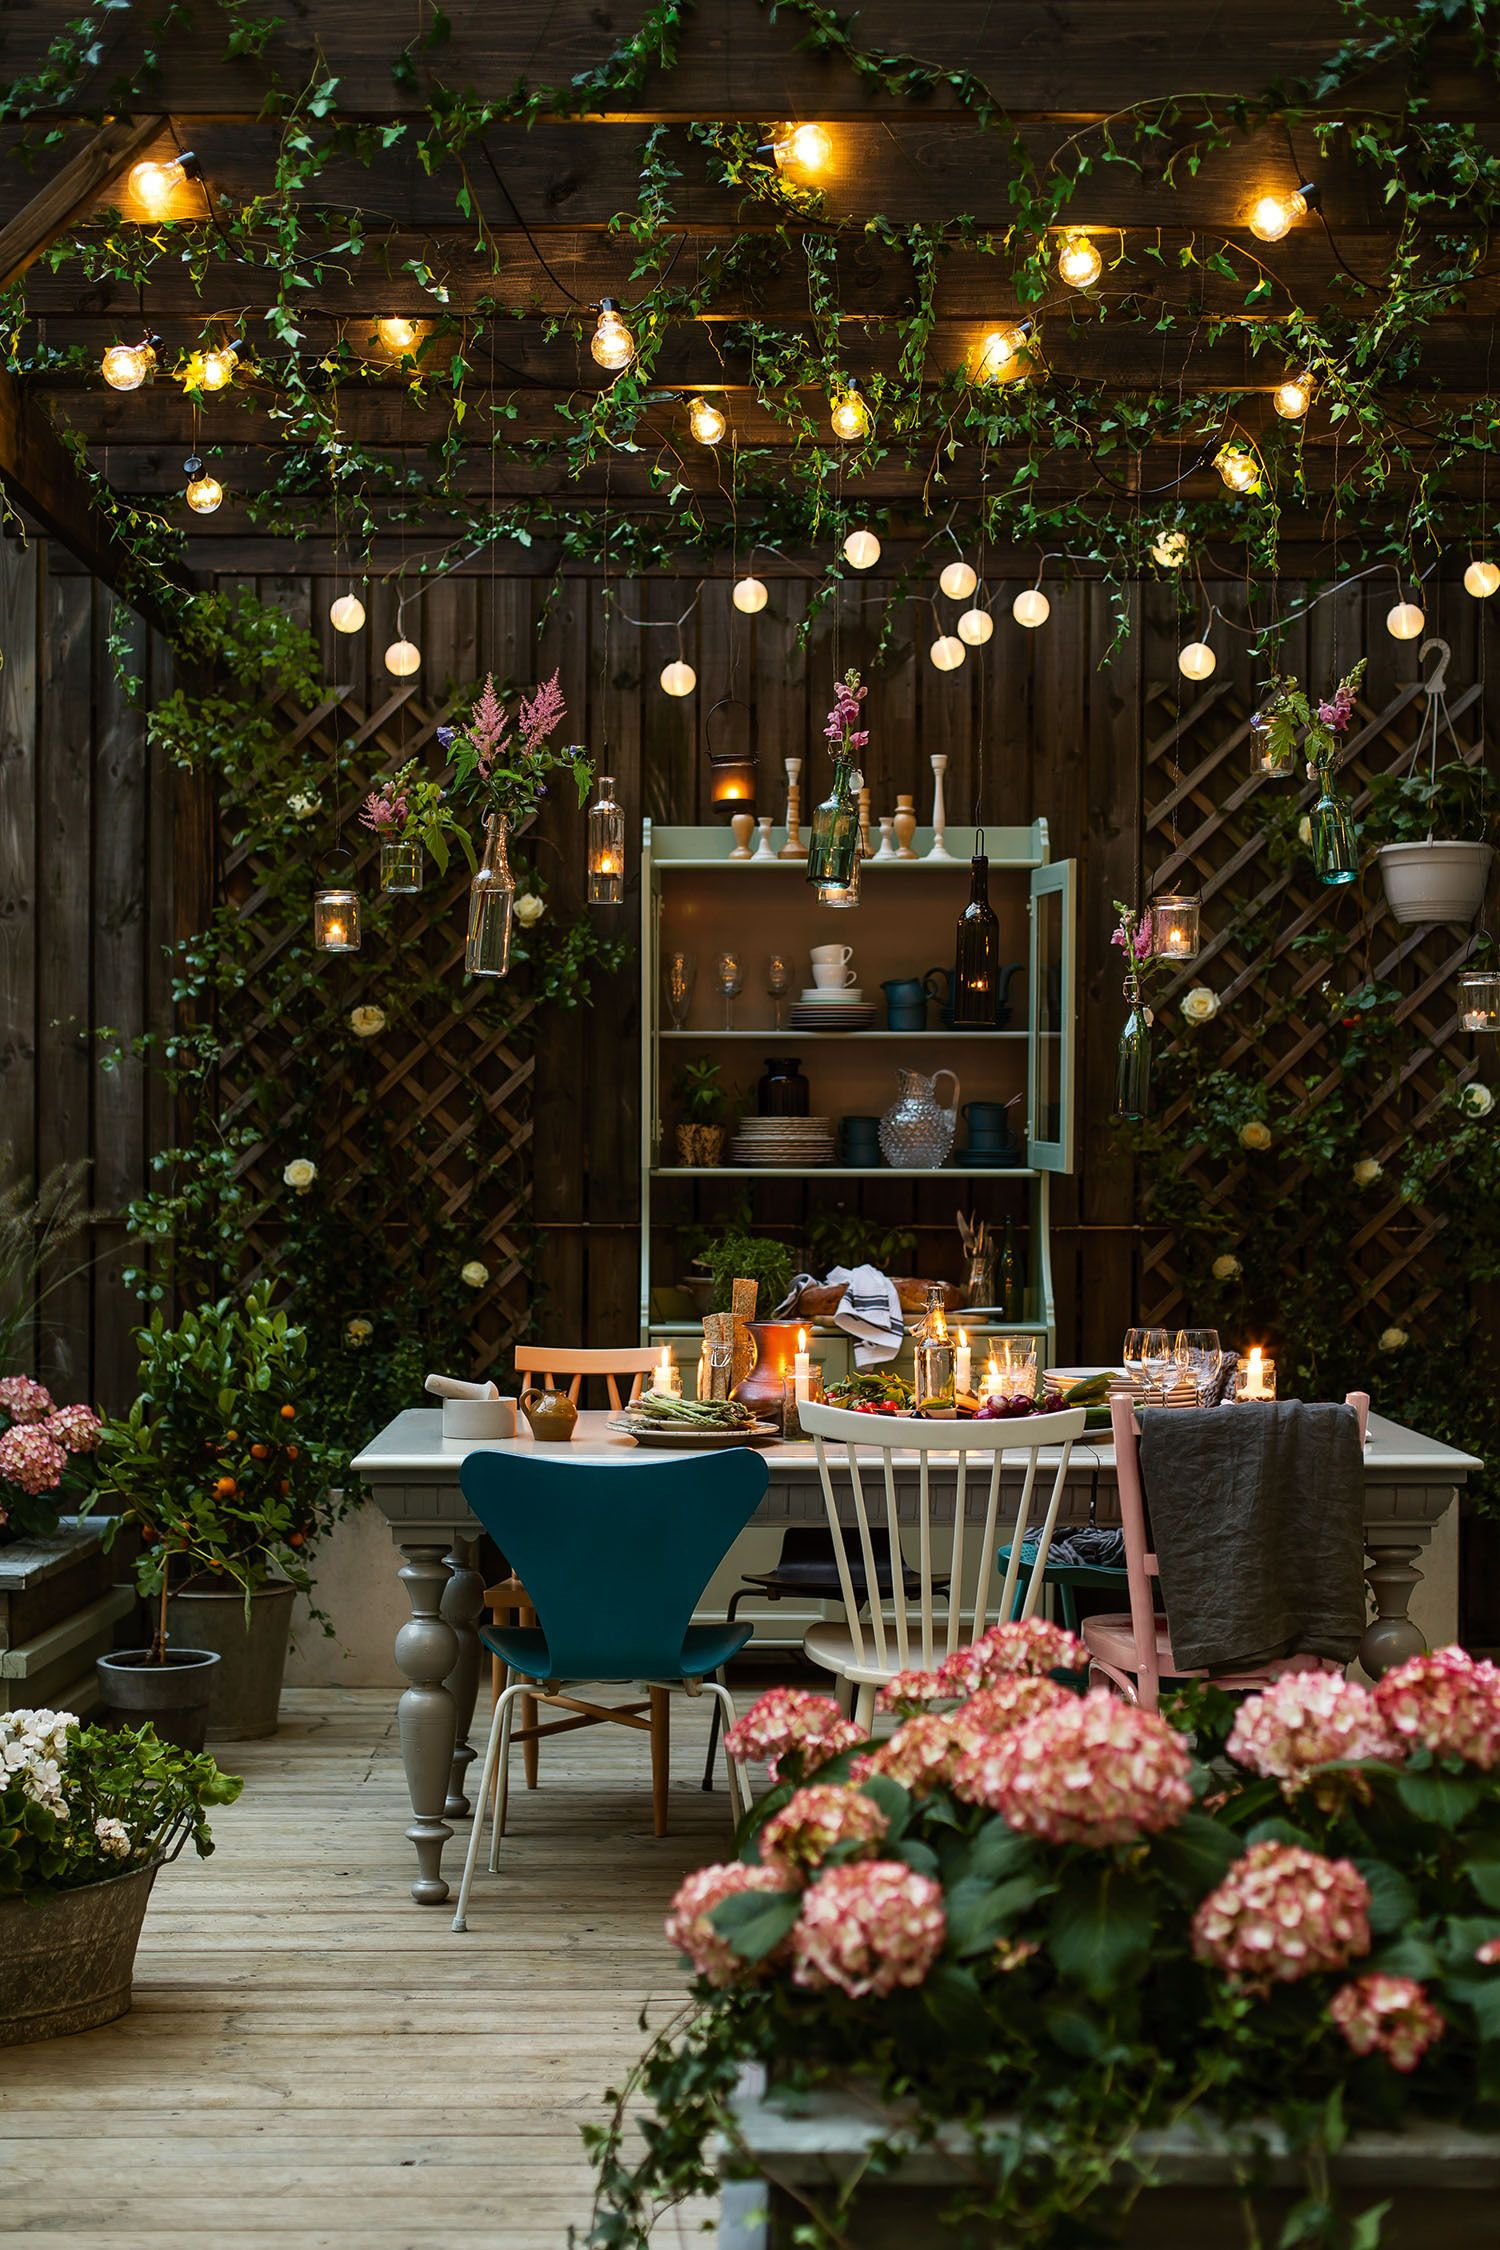 21 Bohemian Garden Ideas | Out door living | Patio lighting ...